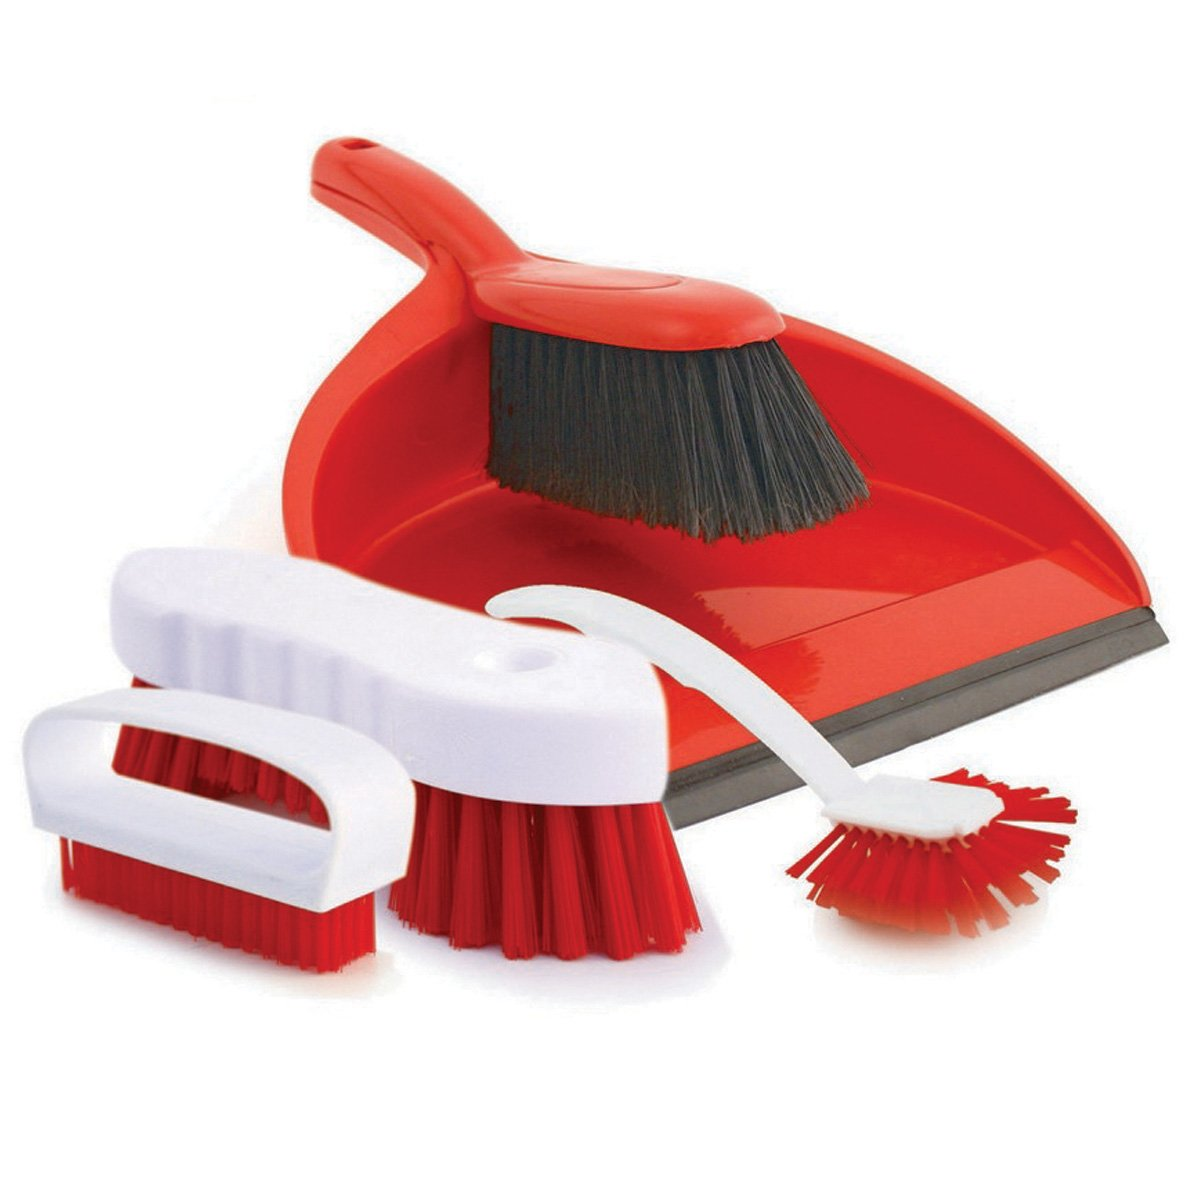 Charles Bentley 4 Piece Colour Coded Cleaning Set Includes Dustpan and Brush - Blue